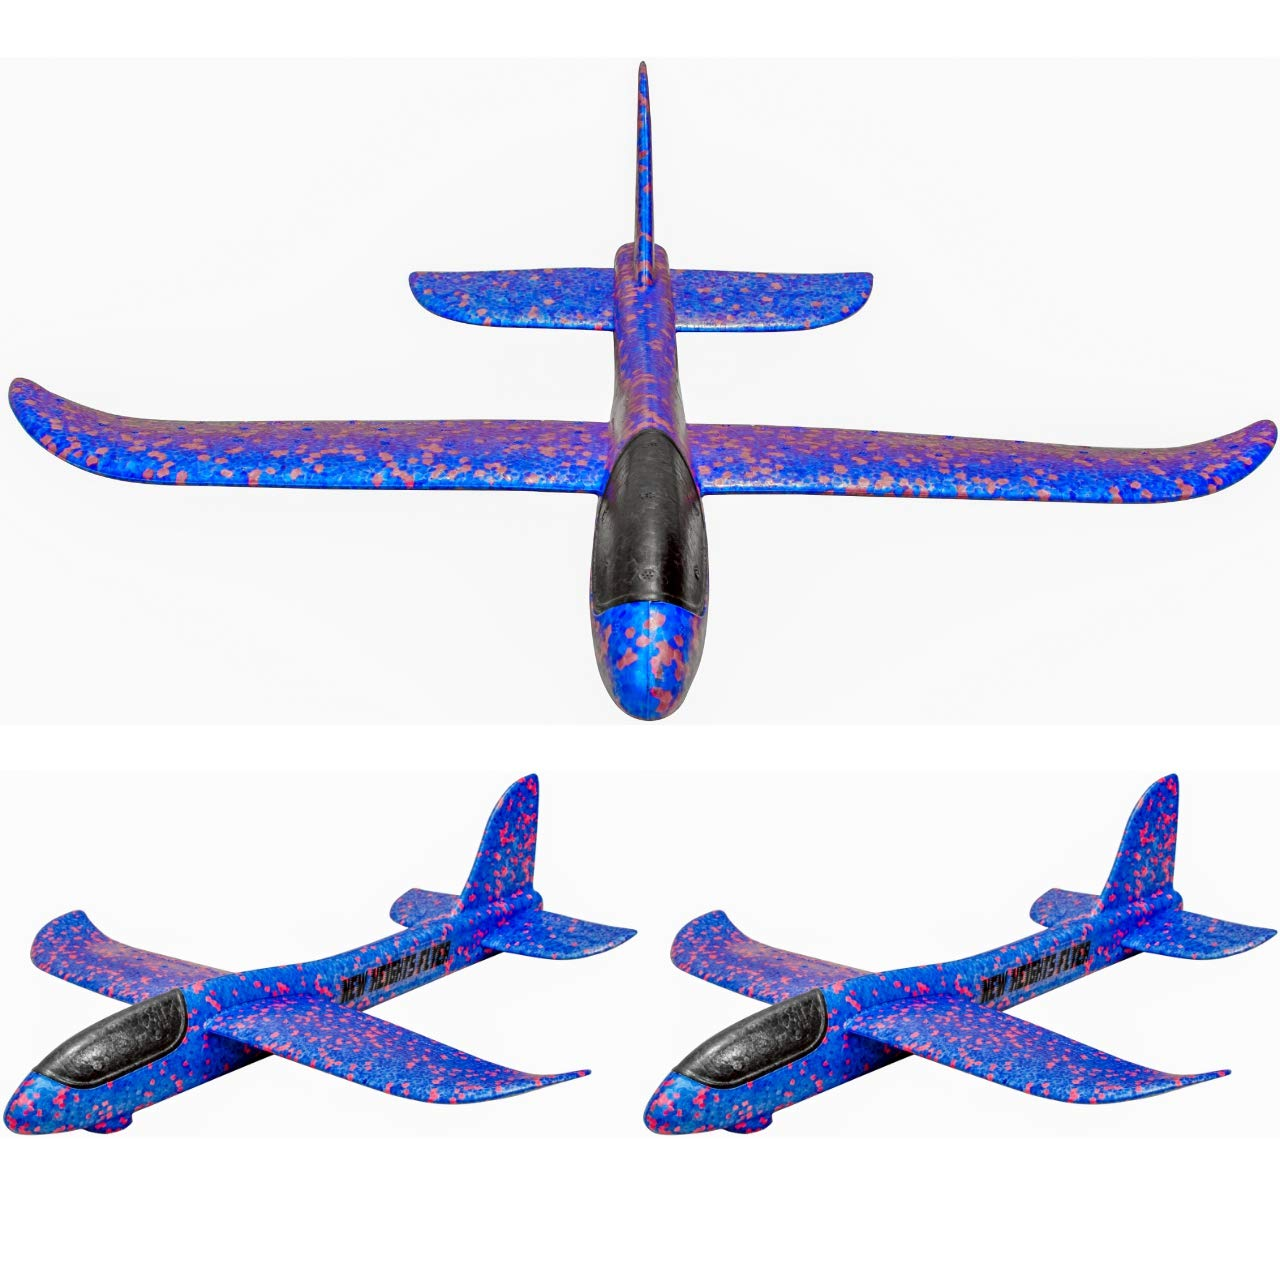 New Heights Flyer Hand Launch Glider Foam Toy Airplane 19 Inch Wingspan 3 Pack (Blue)